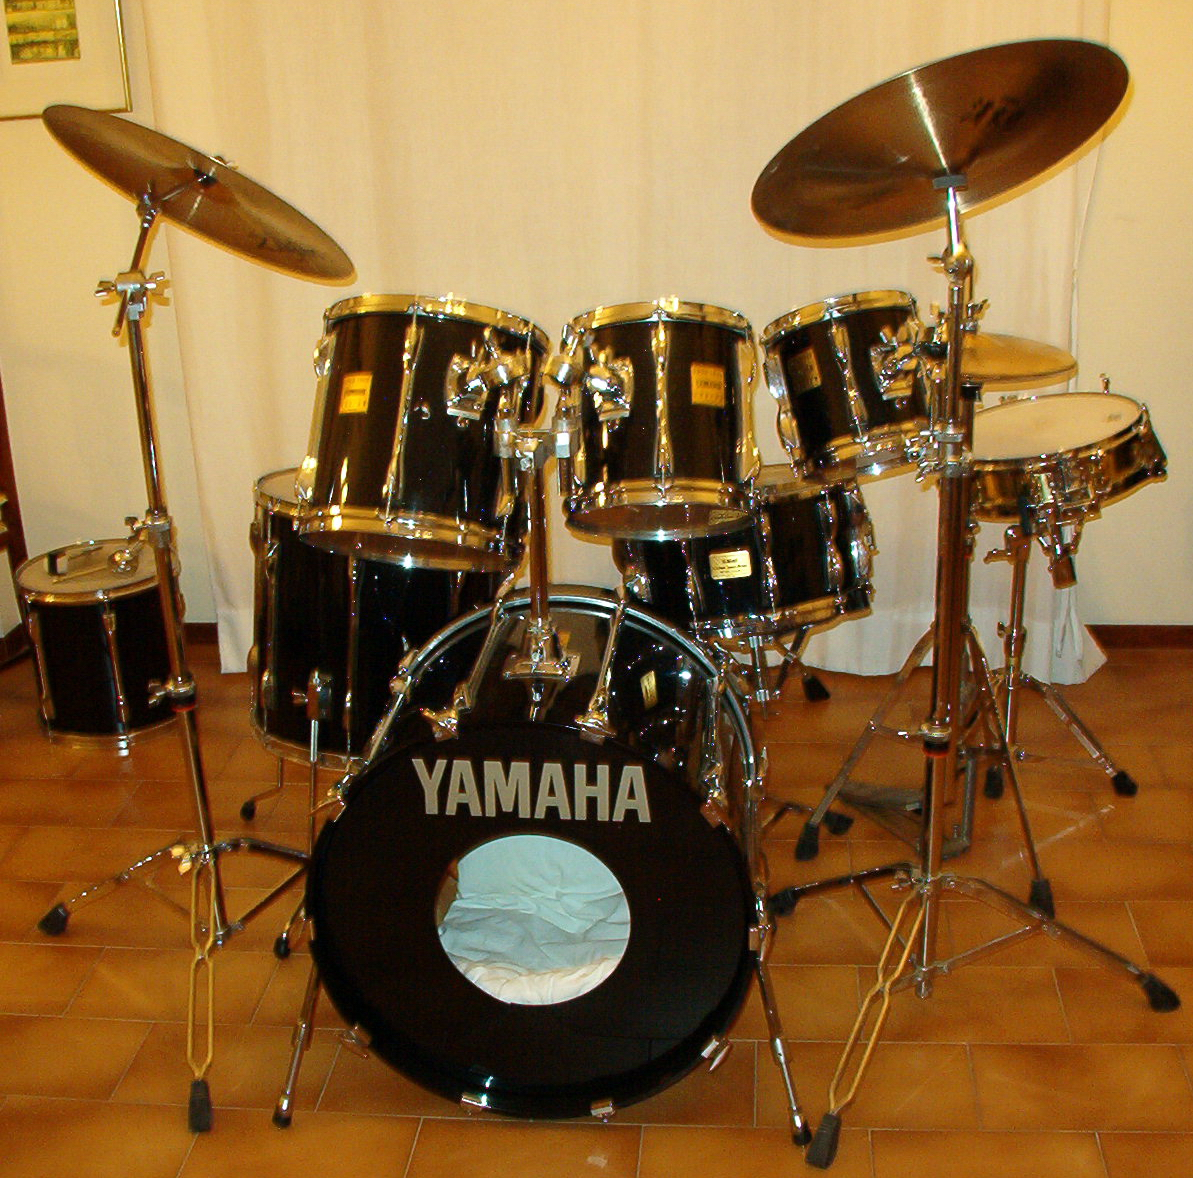 Yamaha Drum Kit For Sale